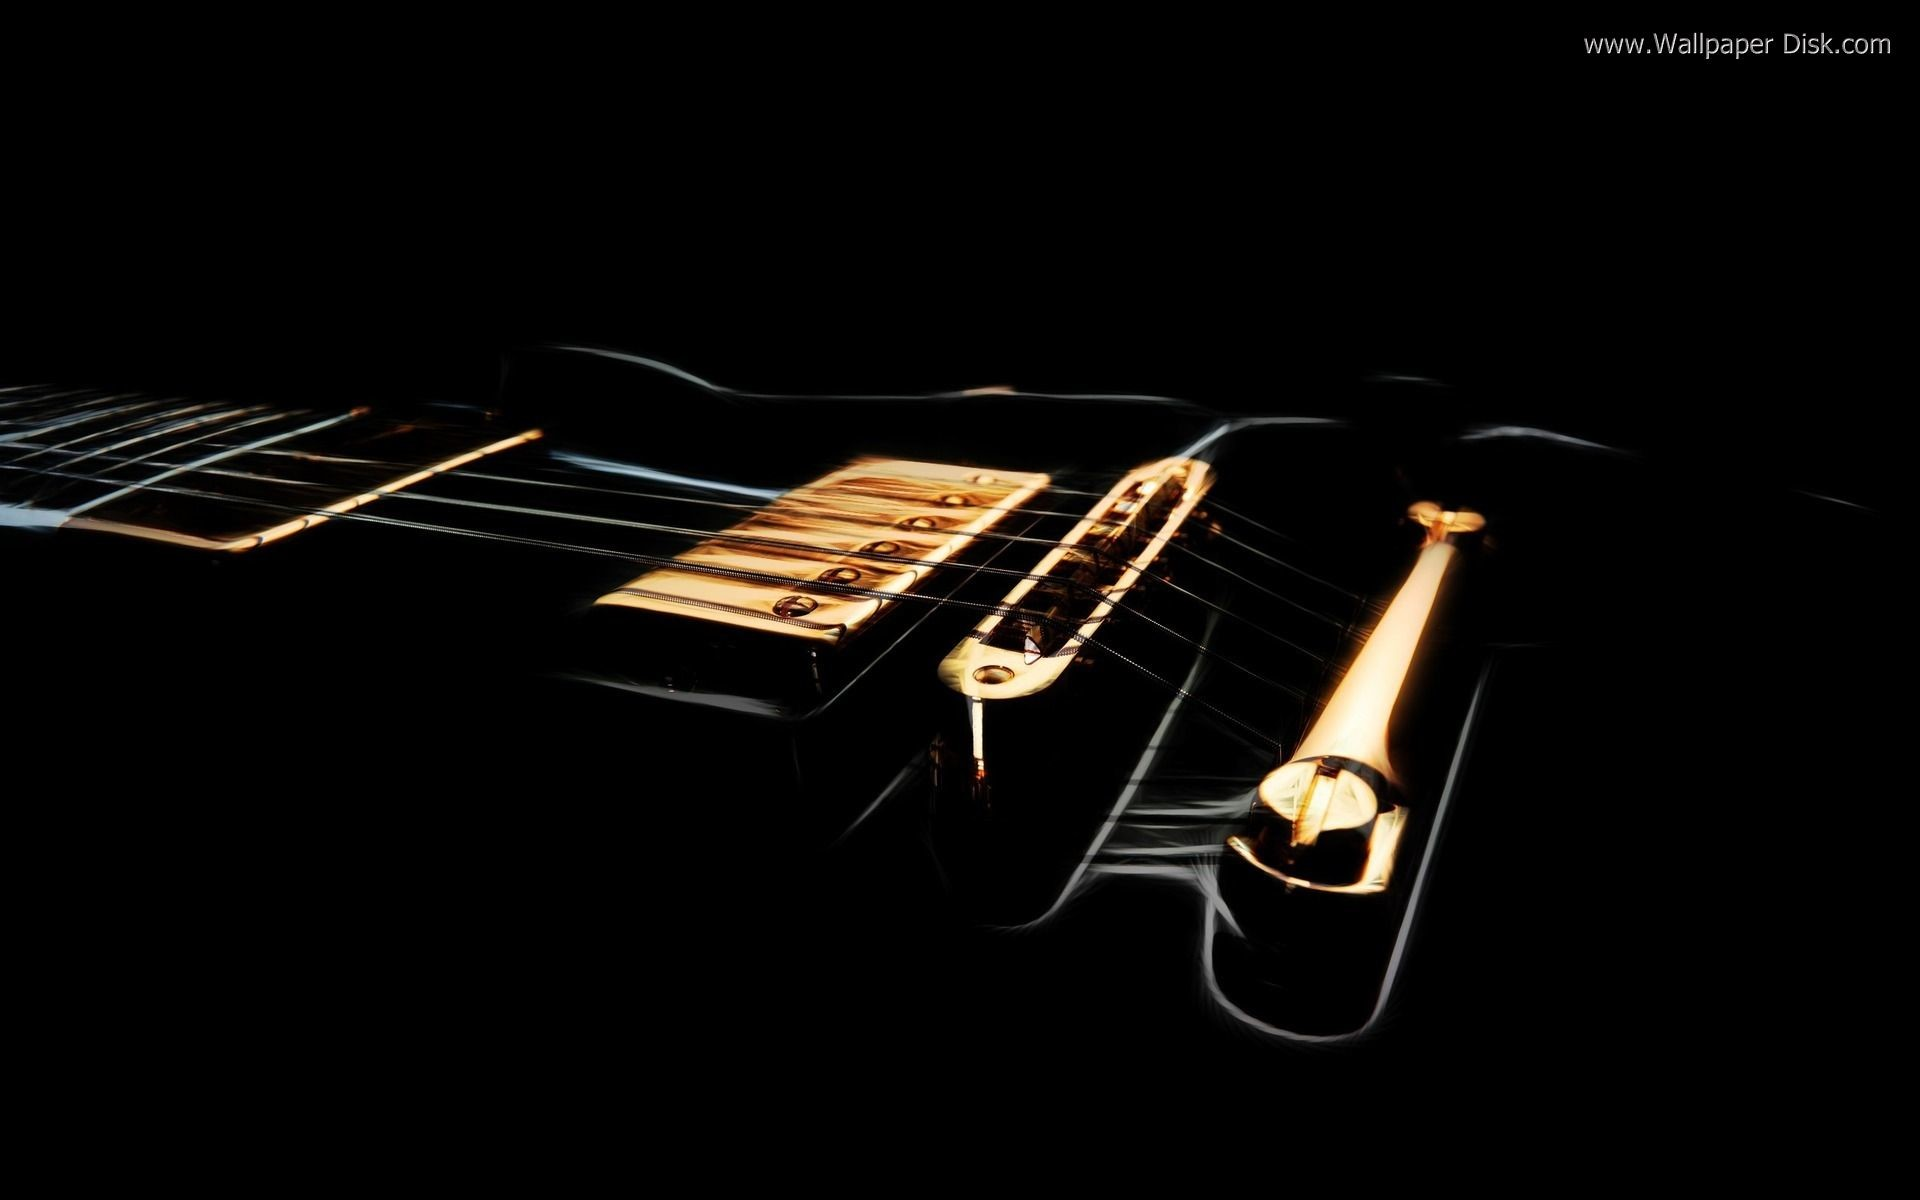 1920x1200 Best Musical instrument desktop wallpapers background collection